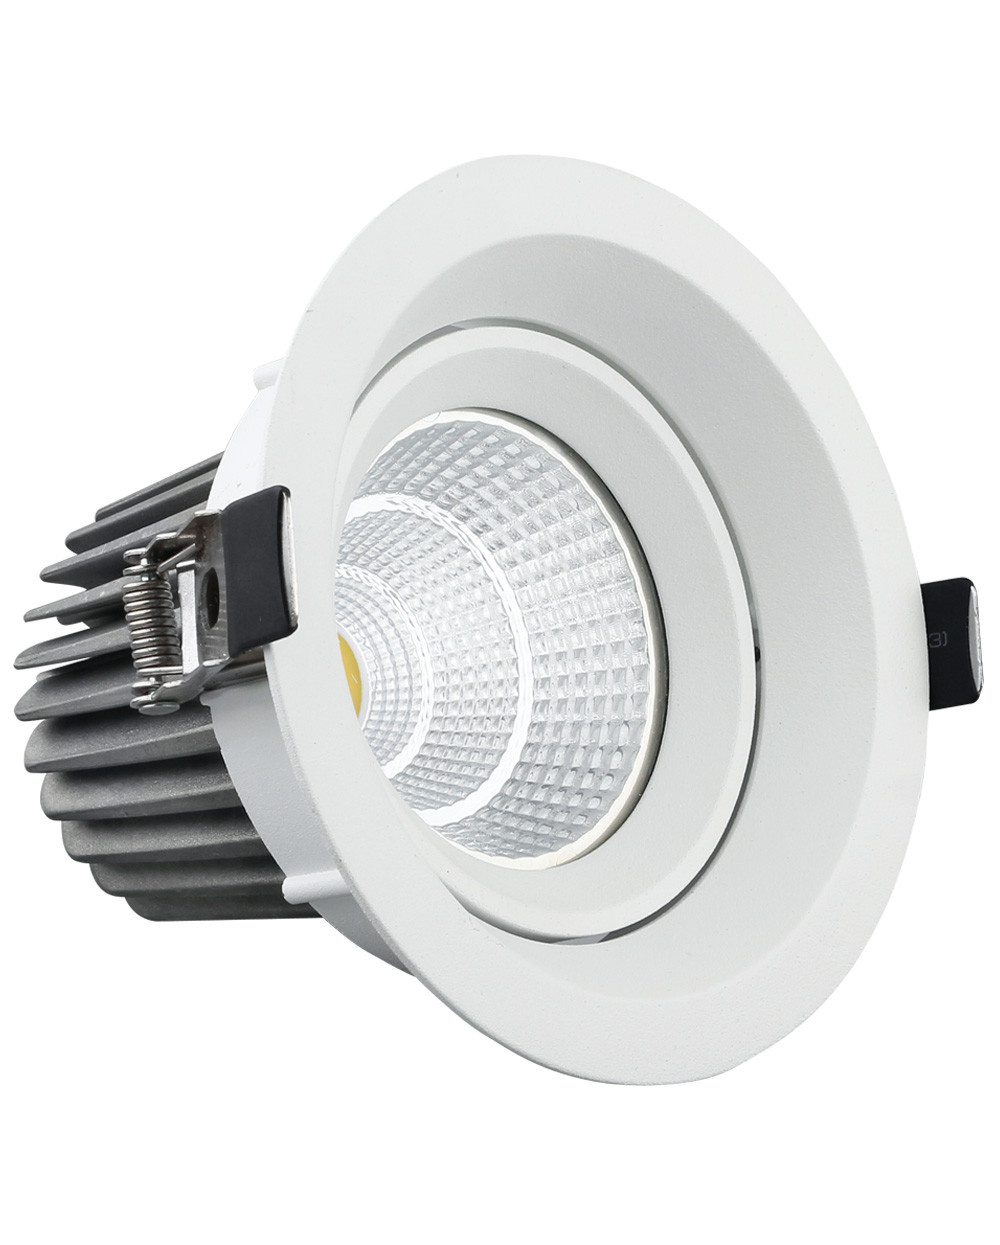 ANGEL-R 9W Oynar Başlı COB Led Downlight - ALOB.186